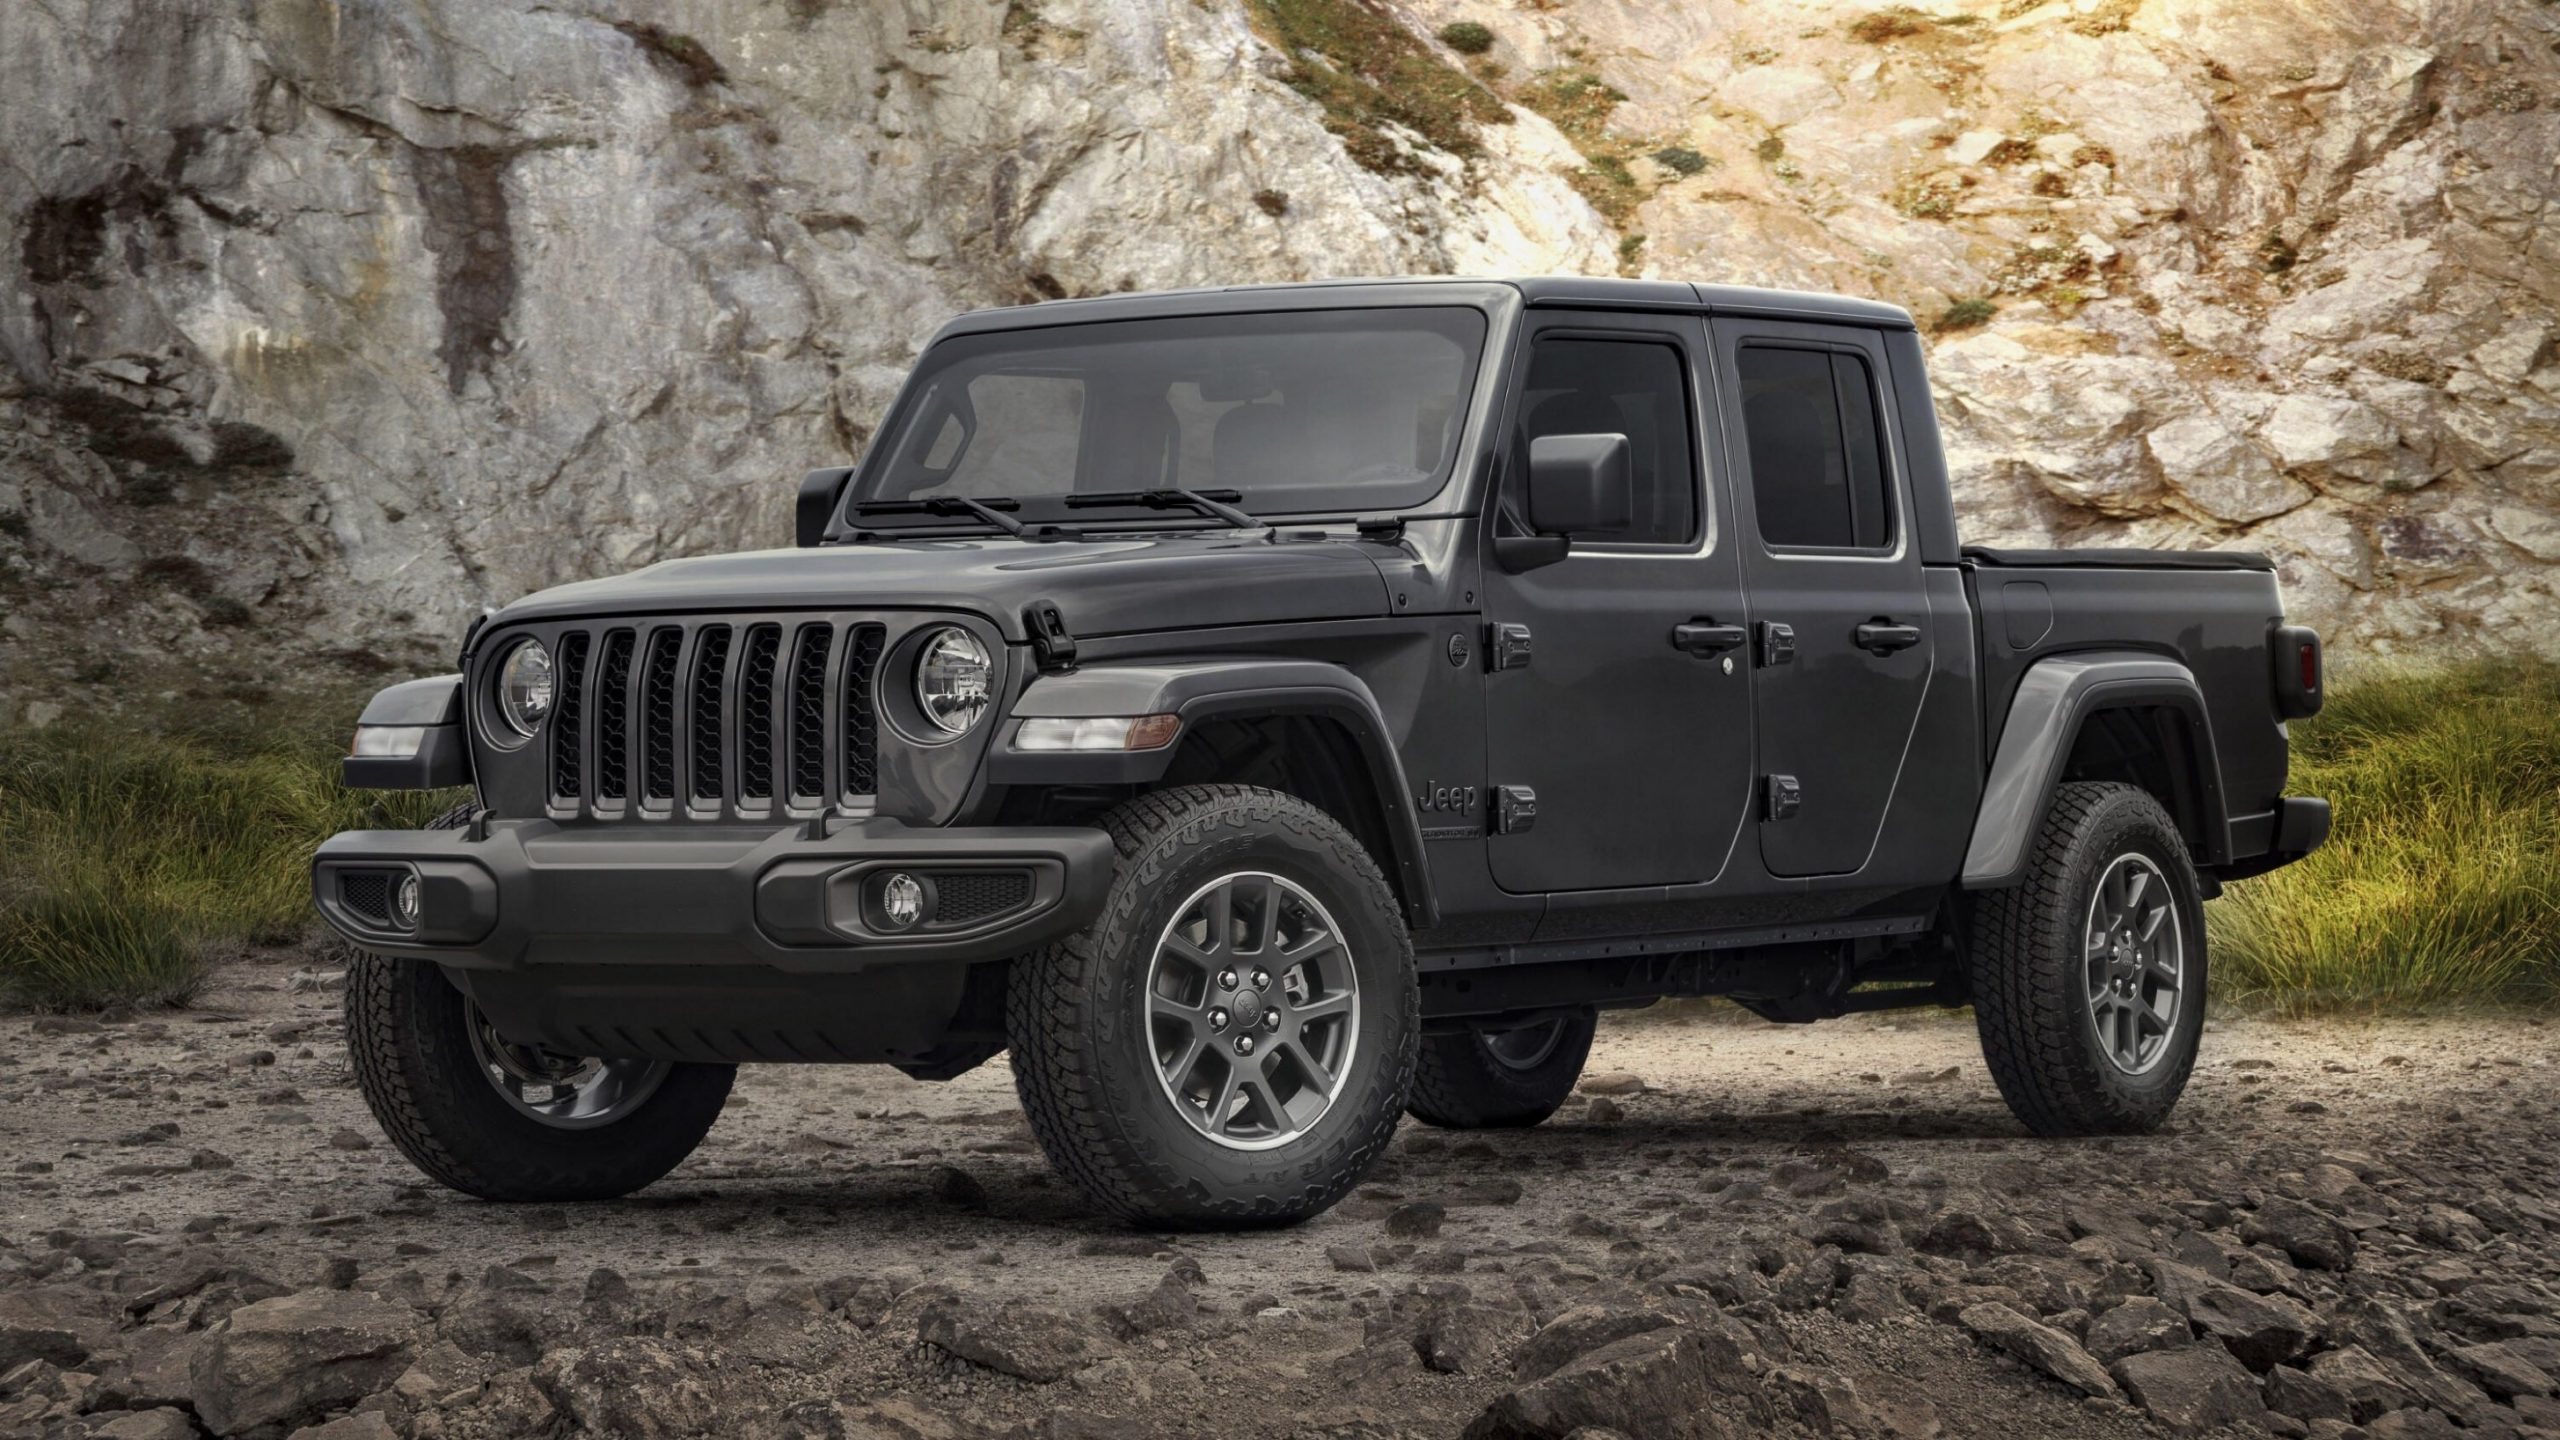 5 Jeep Gladiator 5th Anniversary pricing and pics revealed - When Will The 2021 Jeep Gladiator Be Available